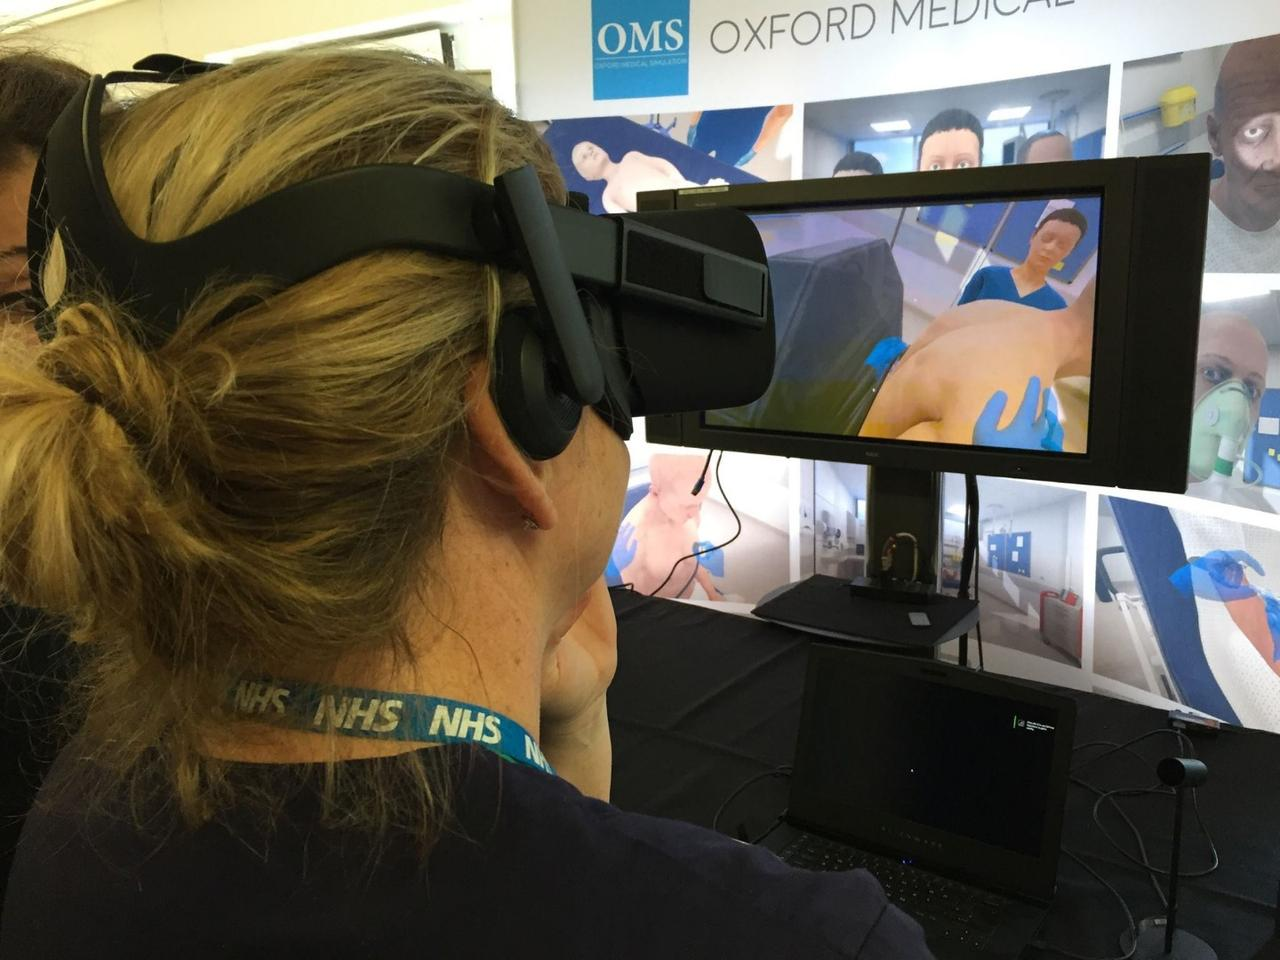 If successful, the virtual reality training program will be rolled out across theUK during 2019